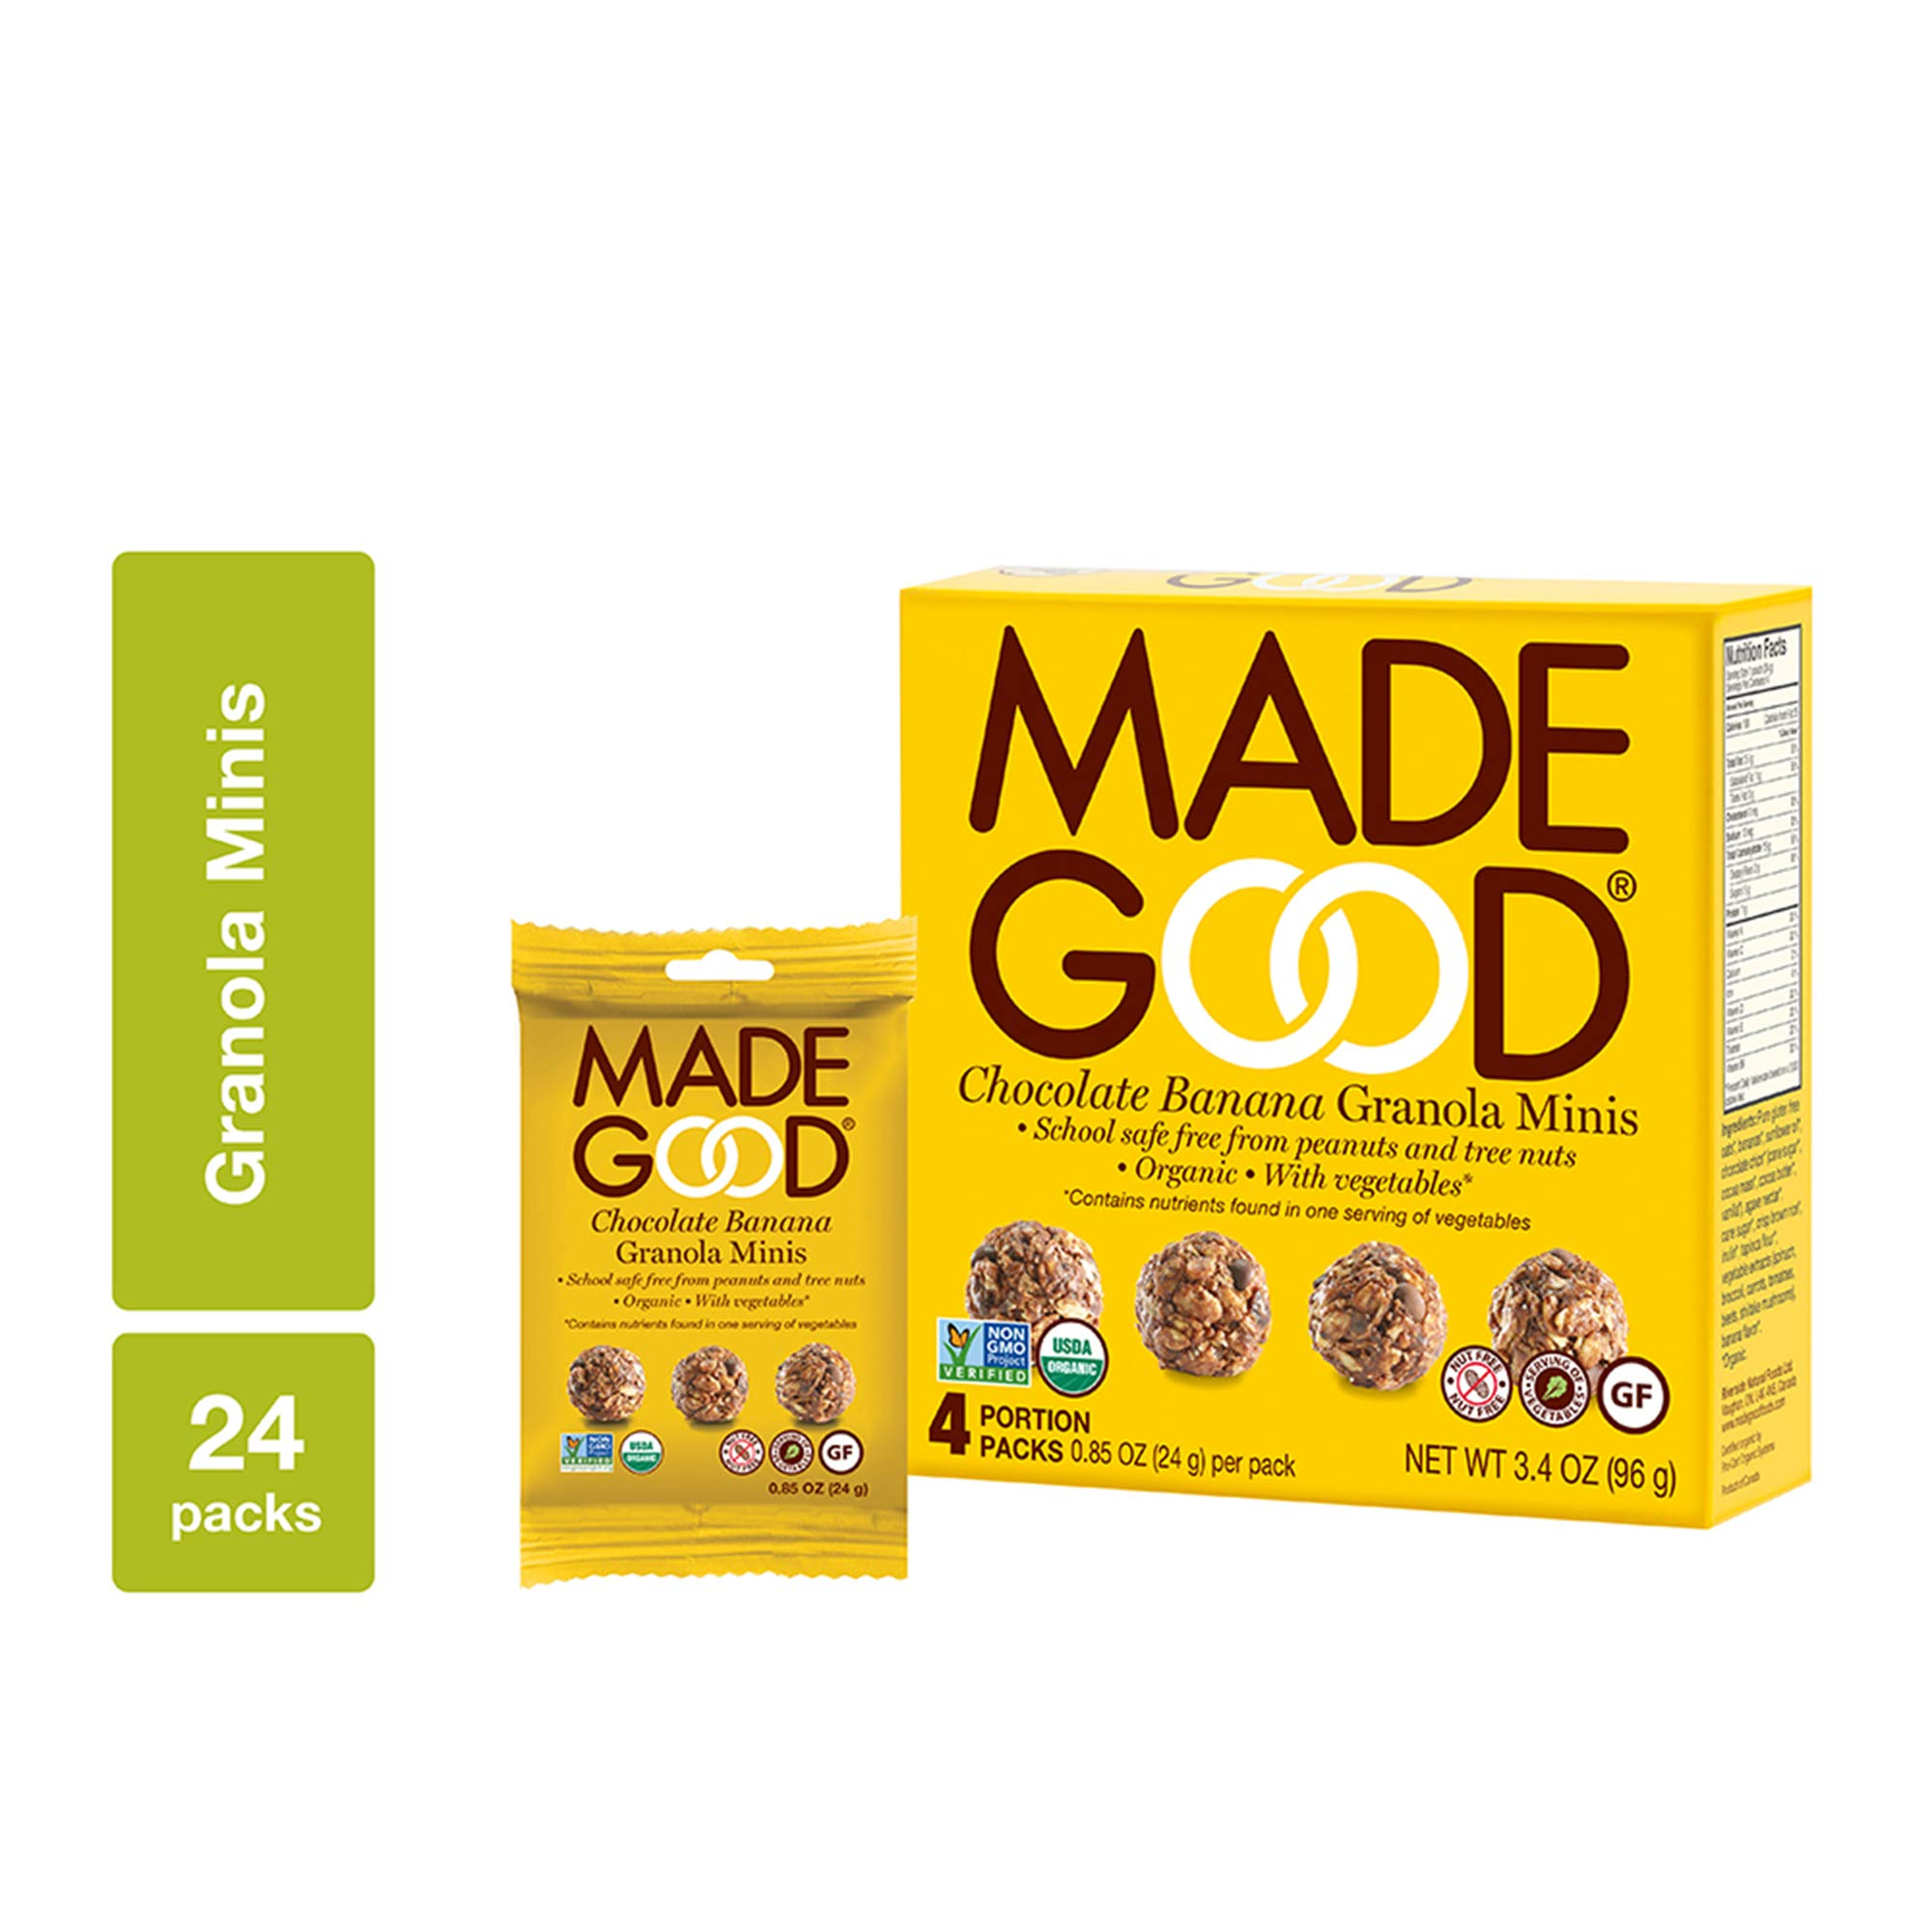 MadeGood Chocolate Banana Granola Minis, 6 Boxes (24 count); Wholesome and Delicious Bite-Sized Snacks; Organic and Made with Allergy Friendly Ingredients; Ideal for School Safe Lunches and Snacks